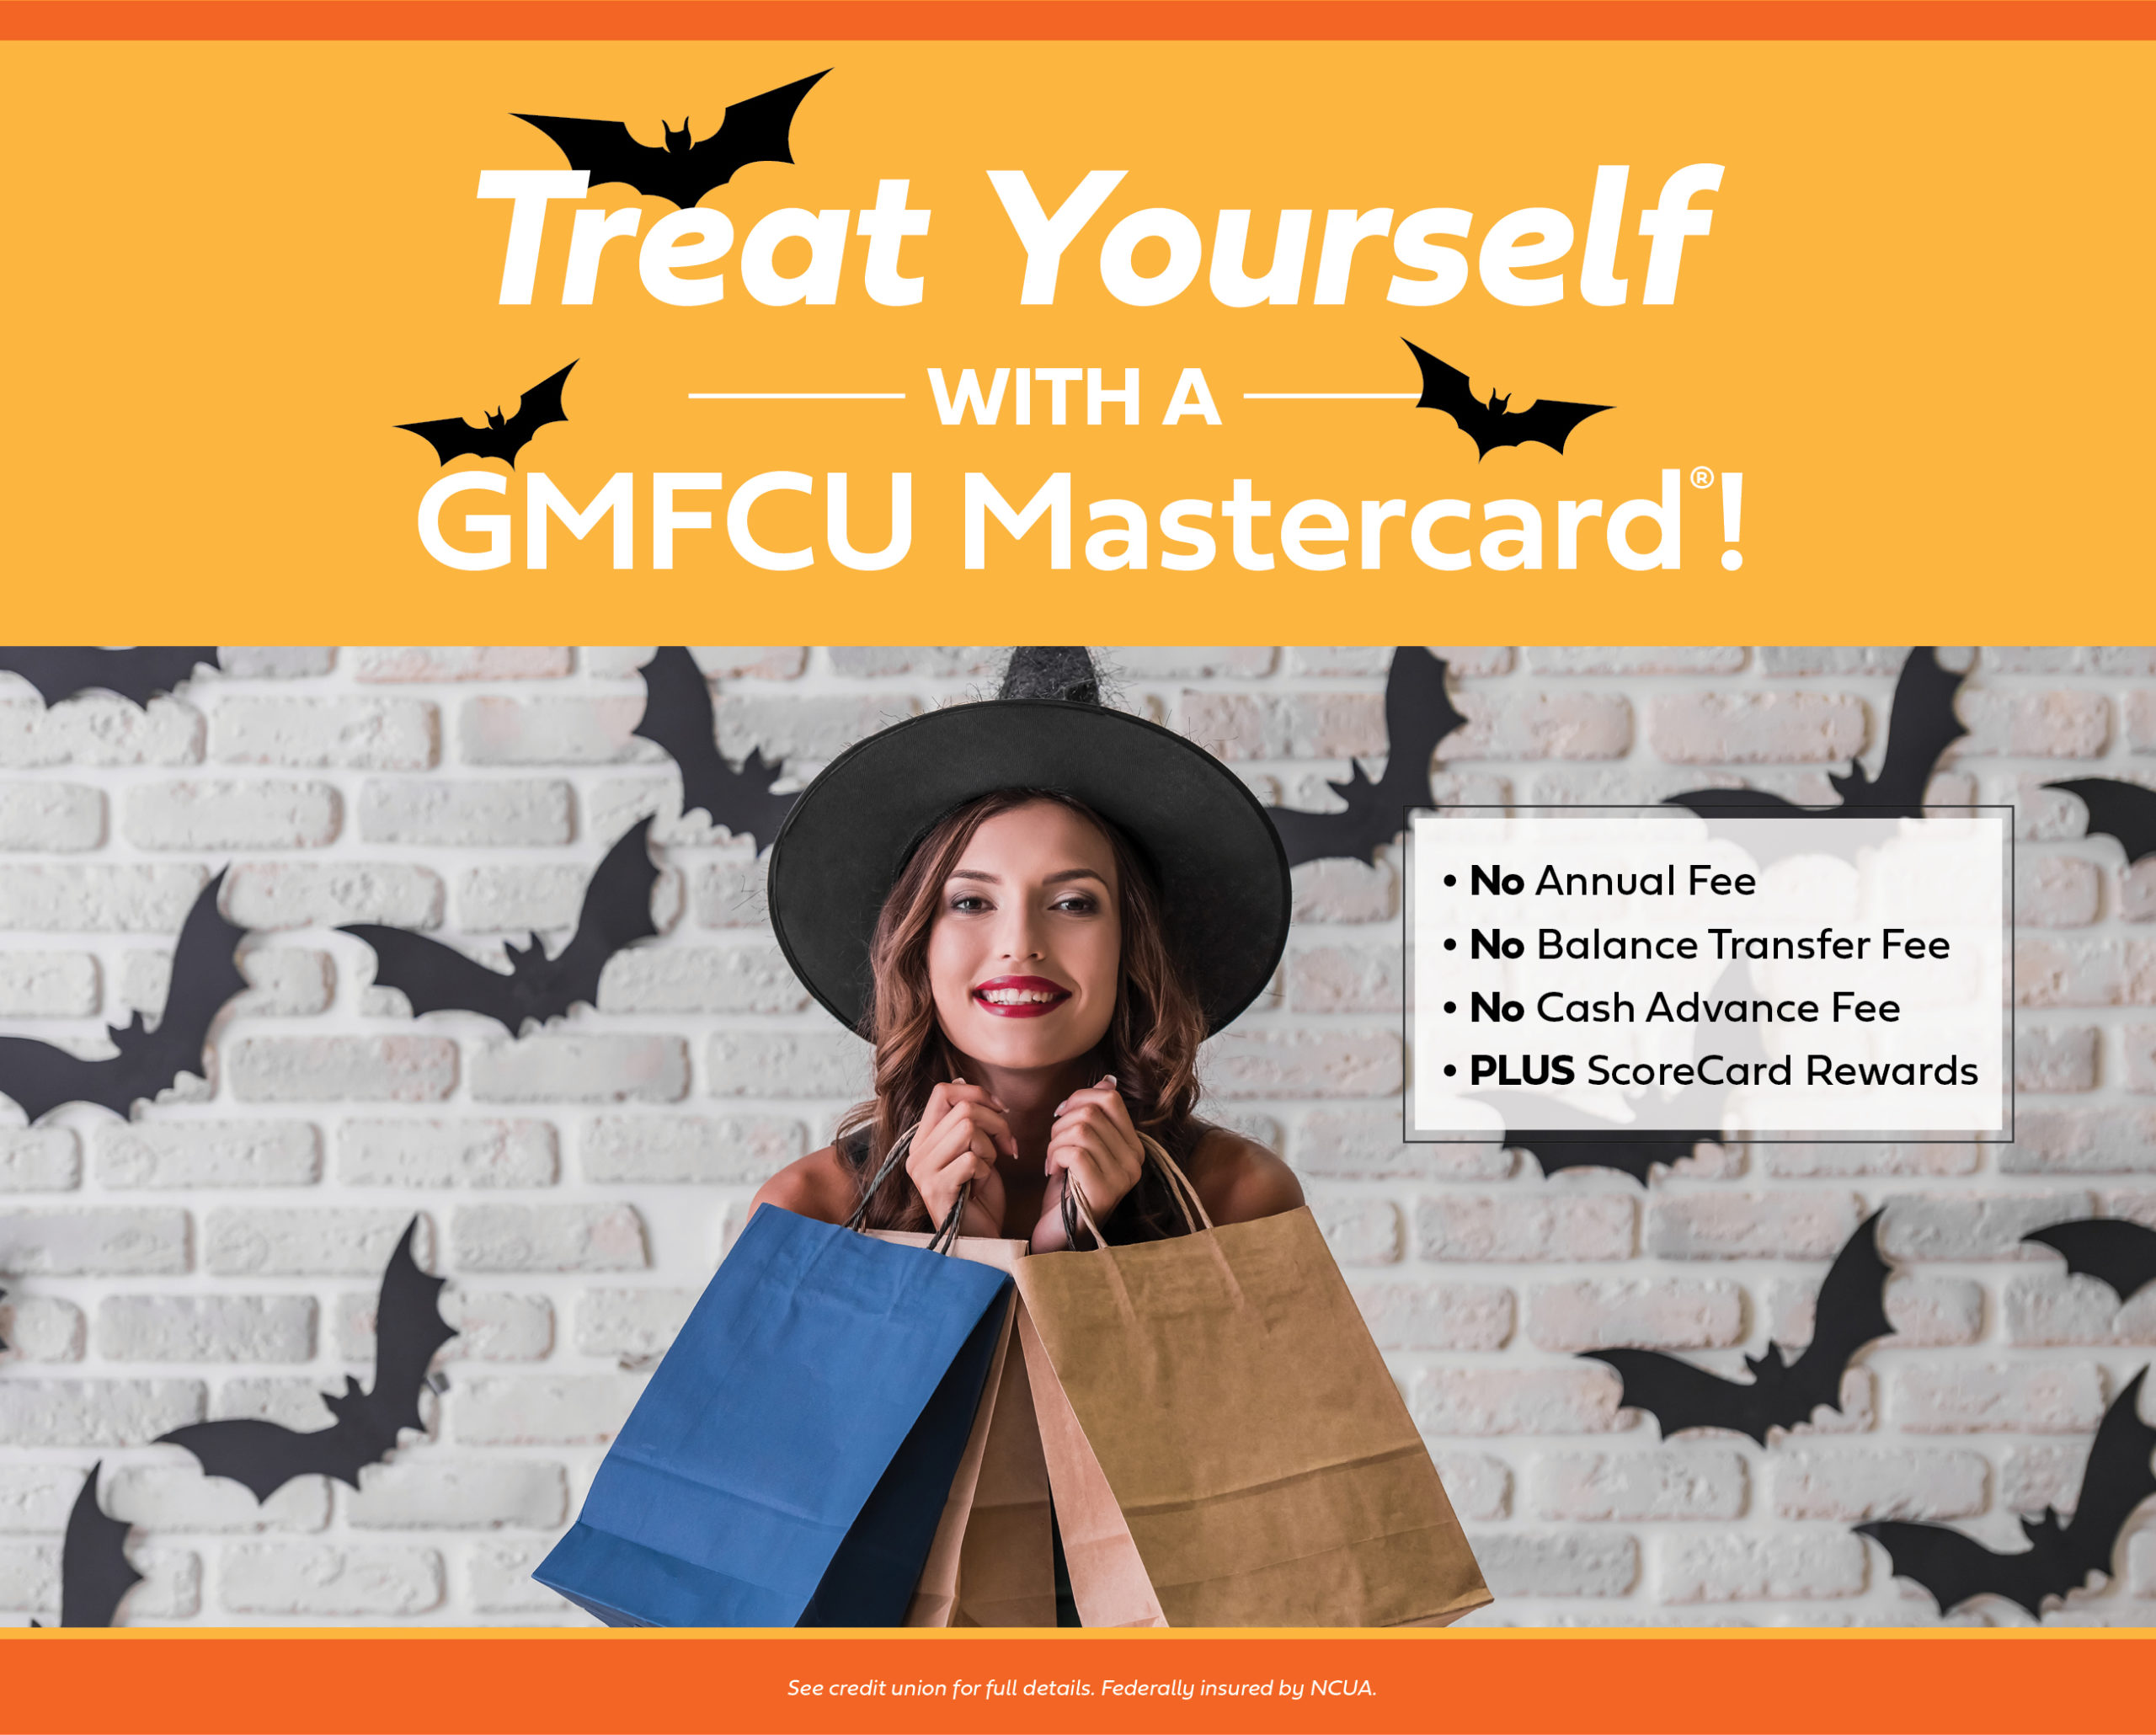 Treat yourself to a credit card with no annual, cash advance fee, or balance transfer fee plus scorecard rewards